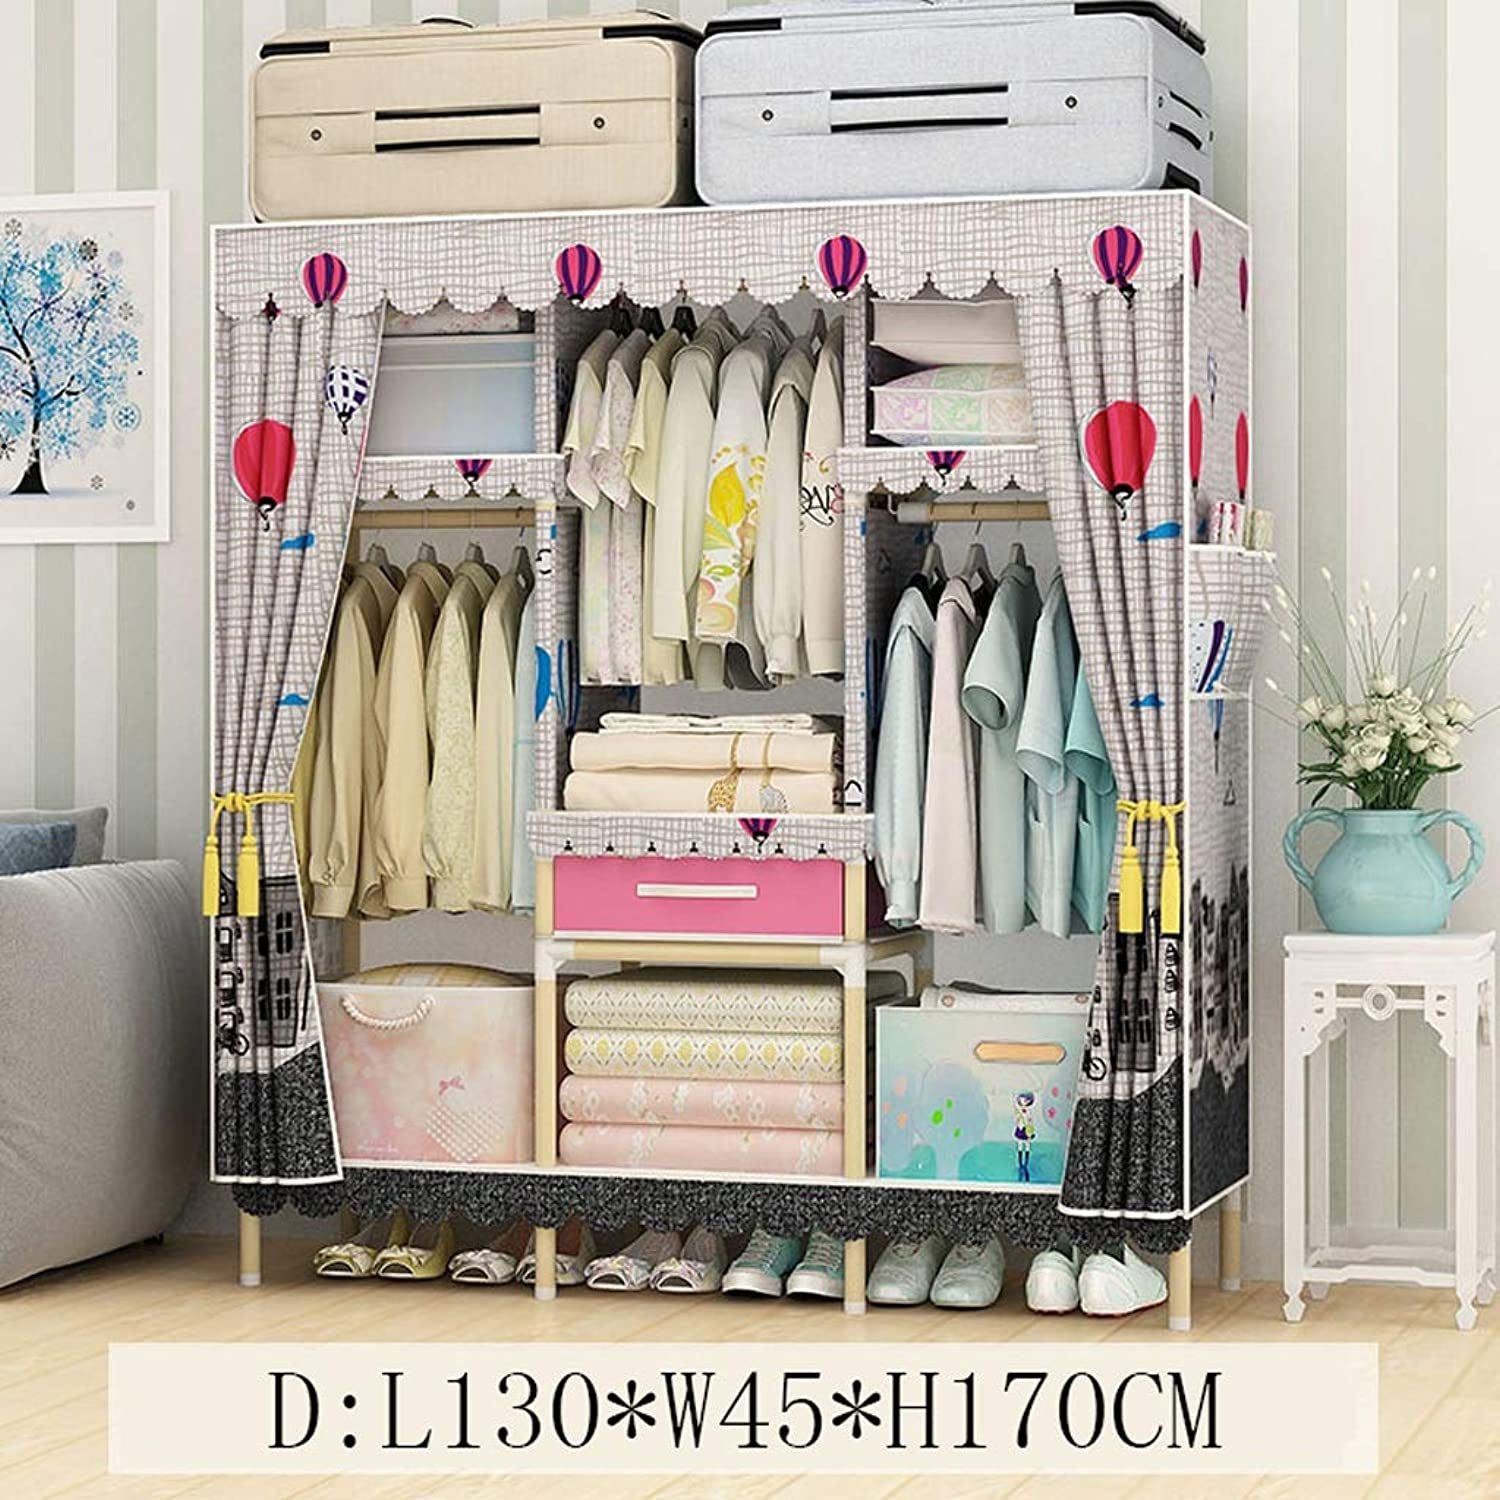 Clothes Closet Wardrobe Wardrobe Portable Clothes Closet Cupboard Combination Bedroom Furniture Storage 130  45  170 cm (color   D)